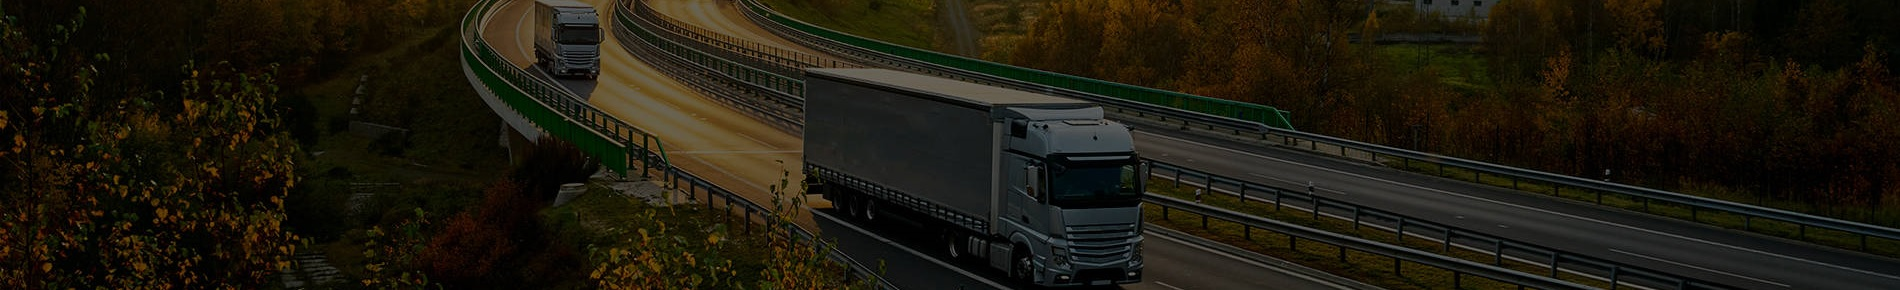 Full_truck_load_freight